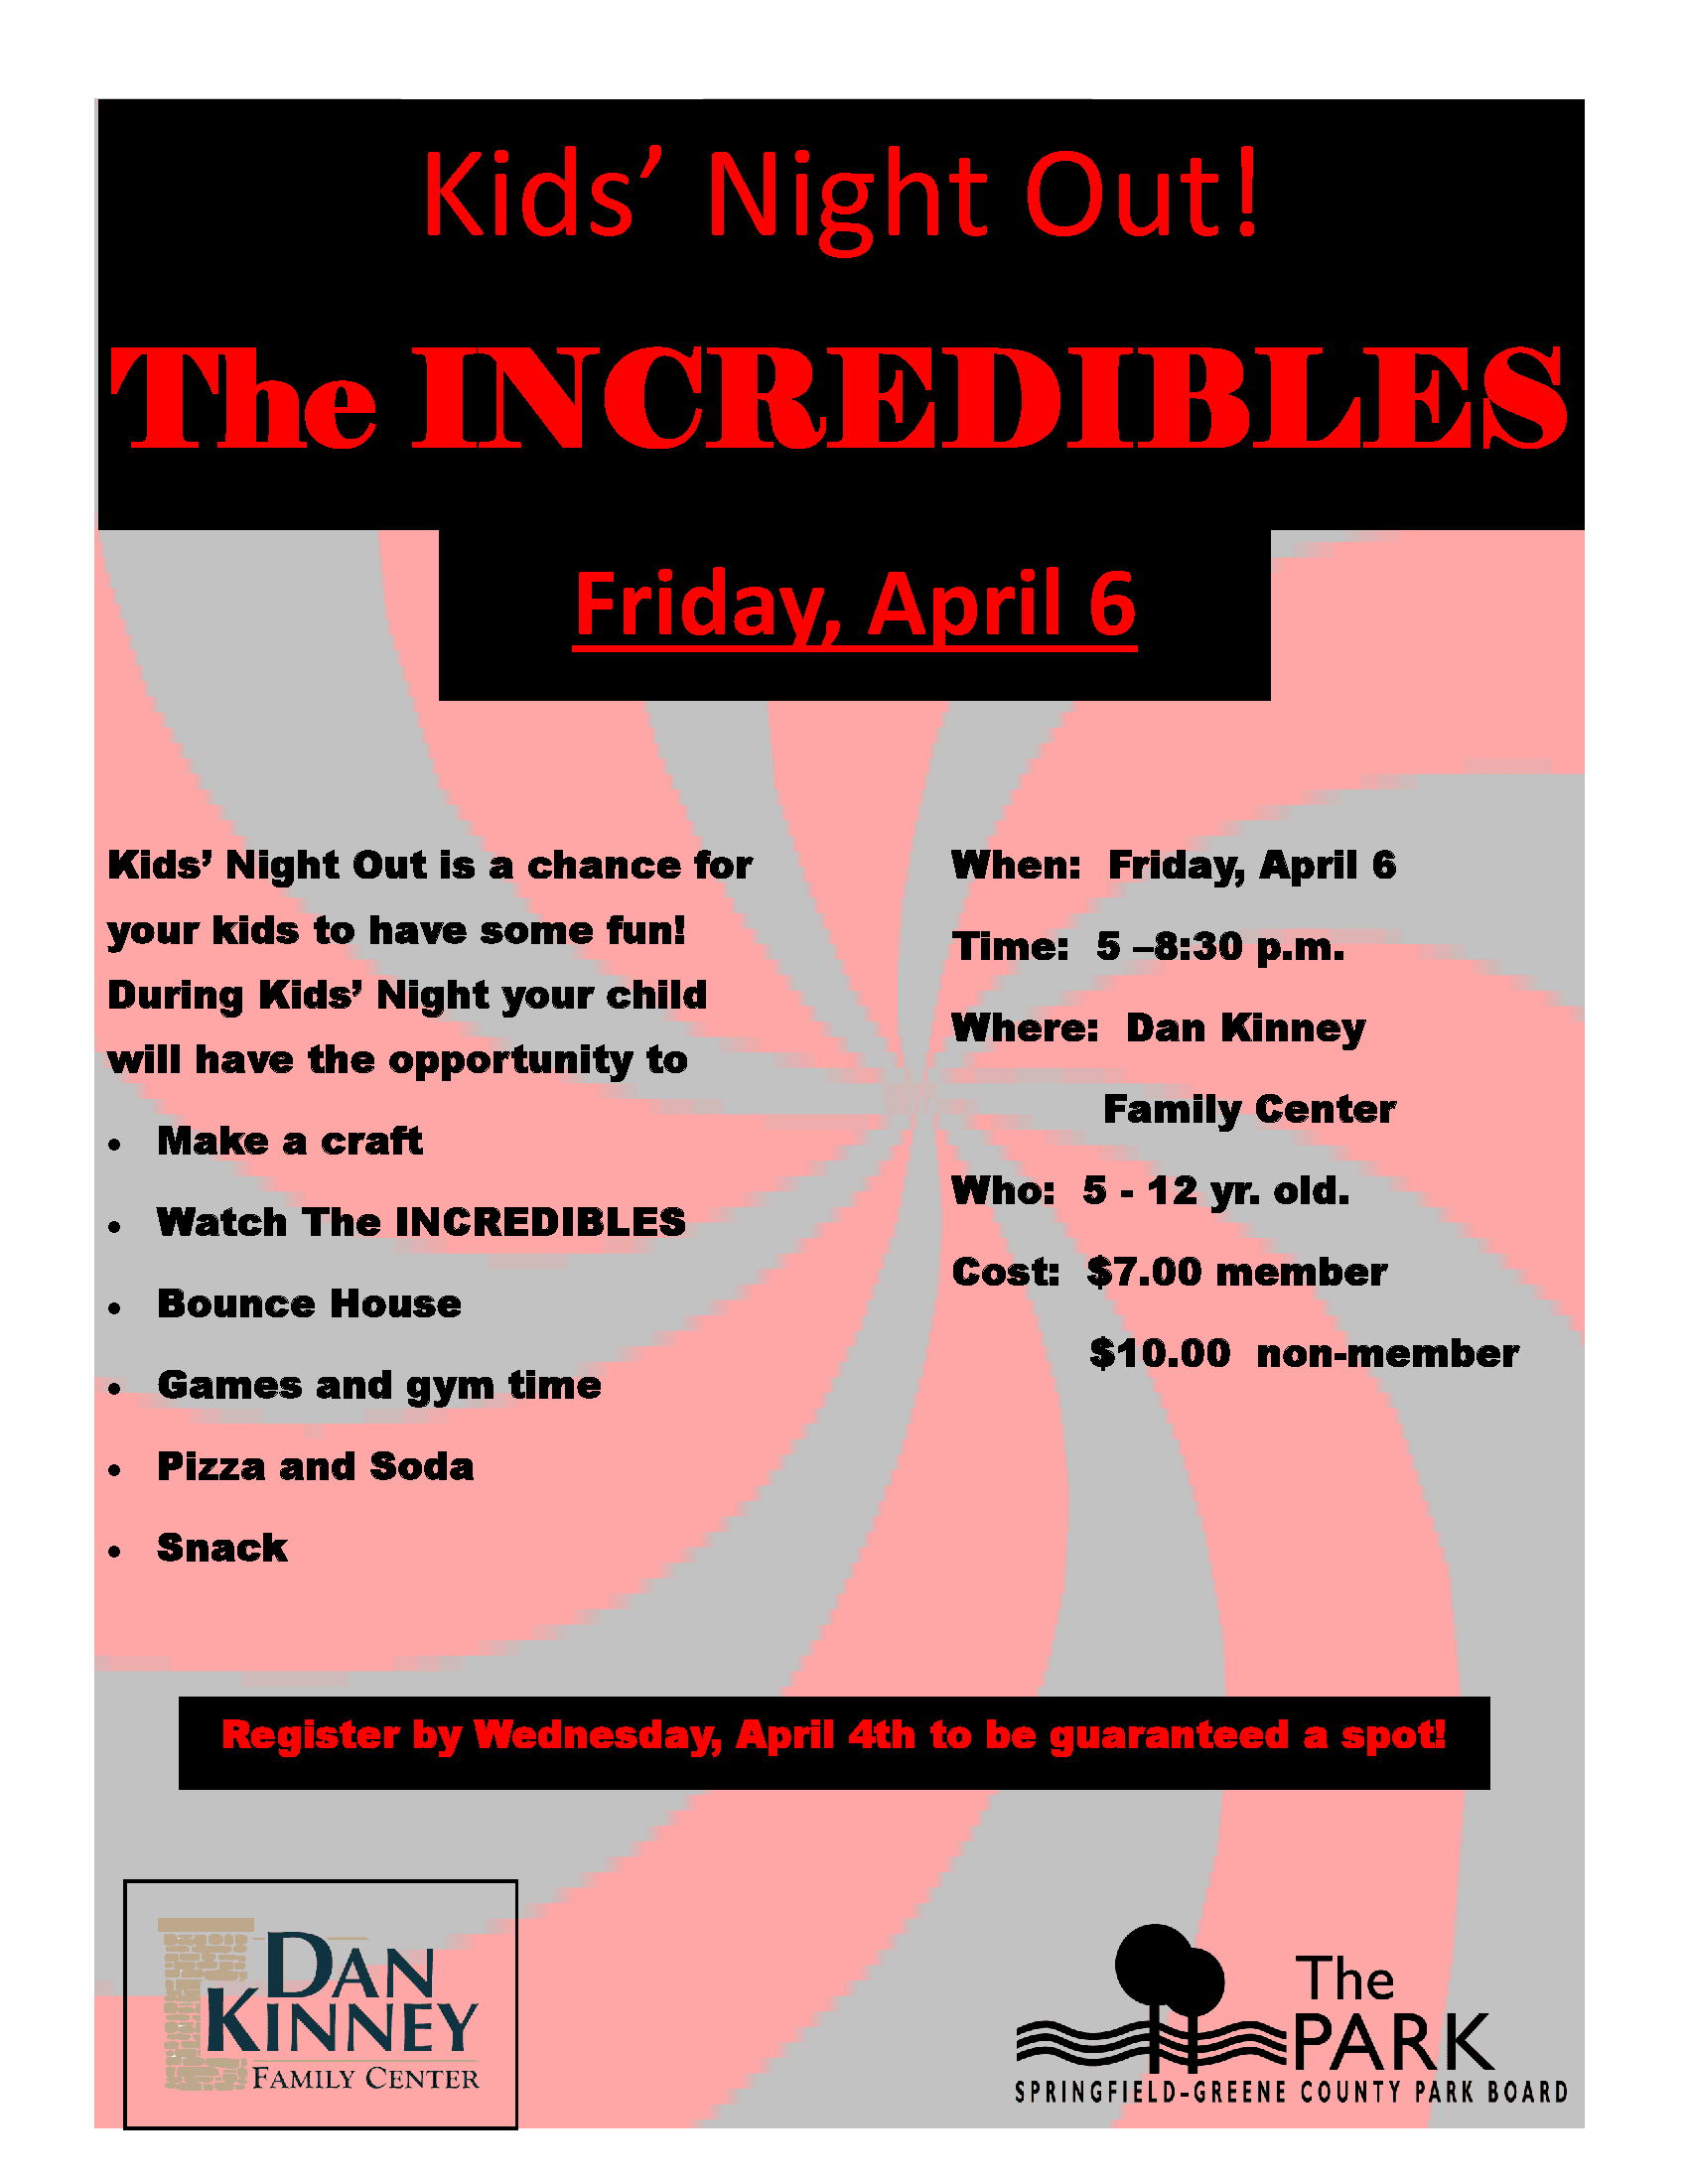 Kids Night - The Incredibles